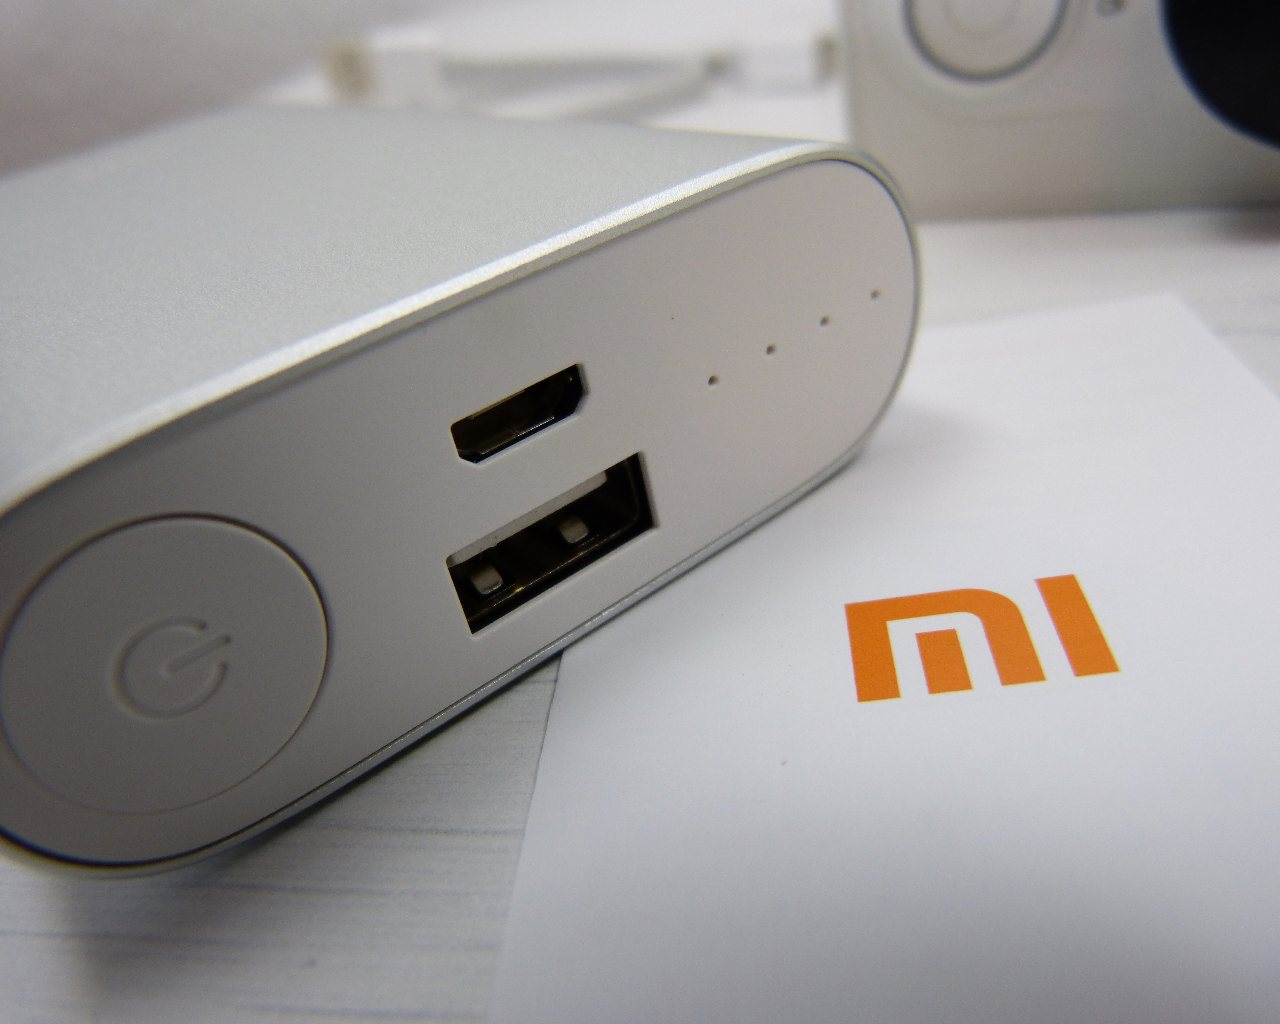 xiaomi powerbank im test 012 die testberichtseite. Black Bedroom Furniture Sets. Home Design Ideas